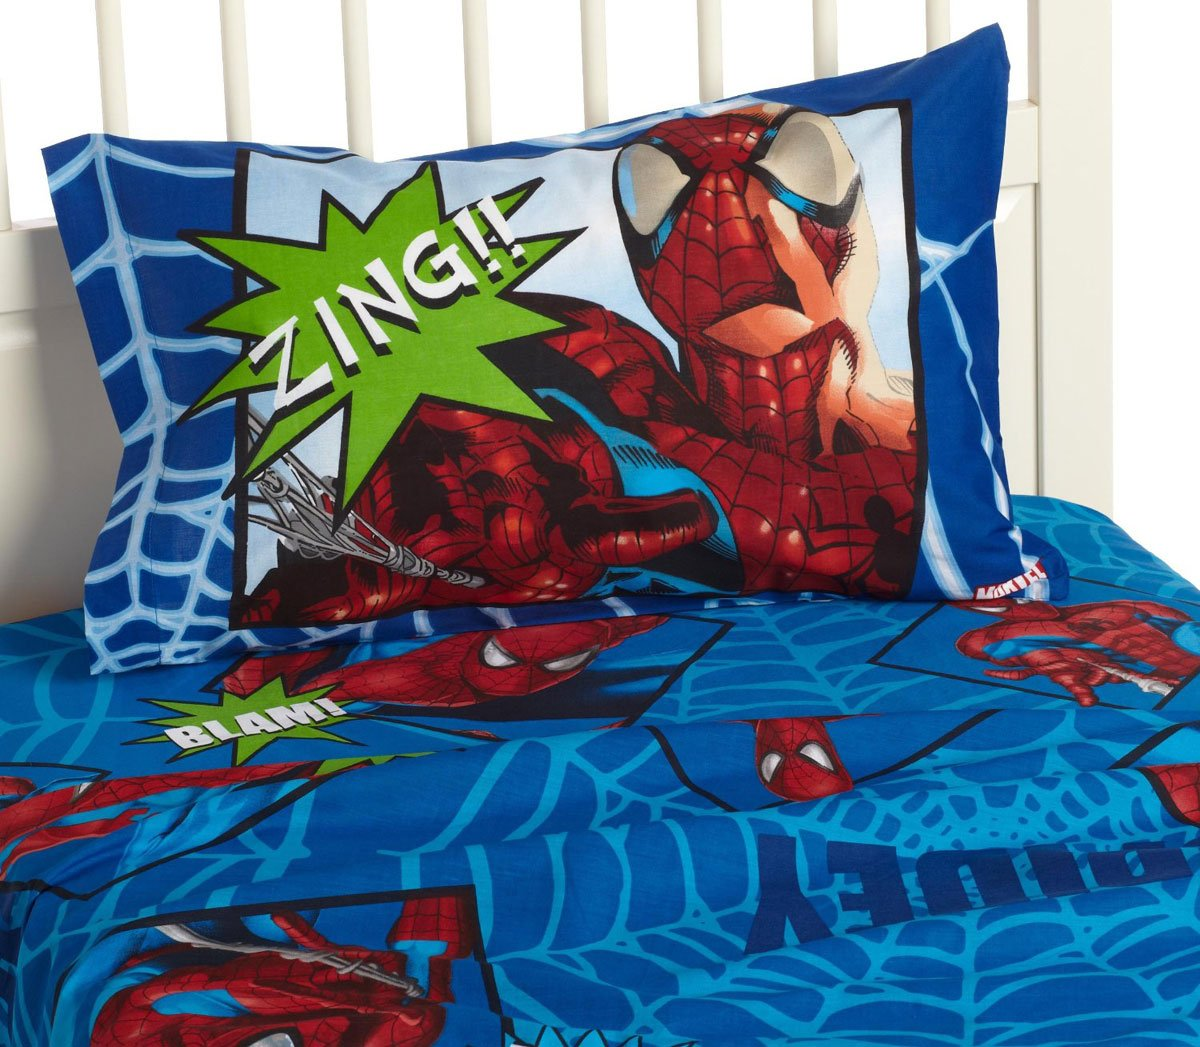 Spiderman and friends bedding - Amazon Com The Amazing Spider Man Full Sheet Set Cotton Rich Home Kitchen